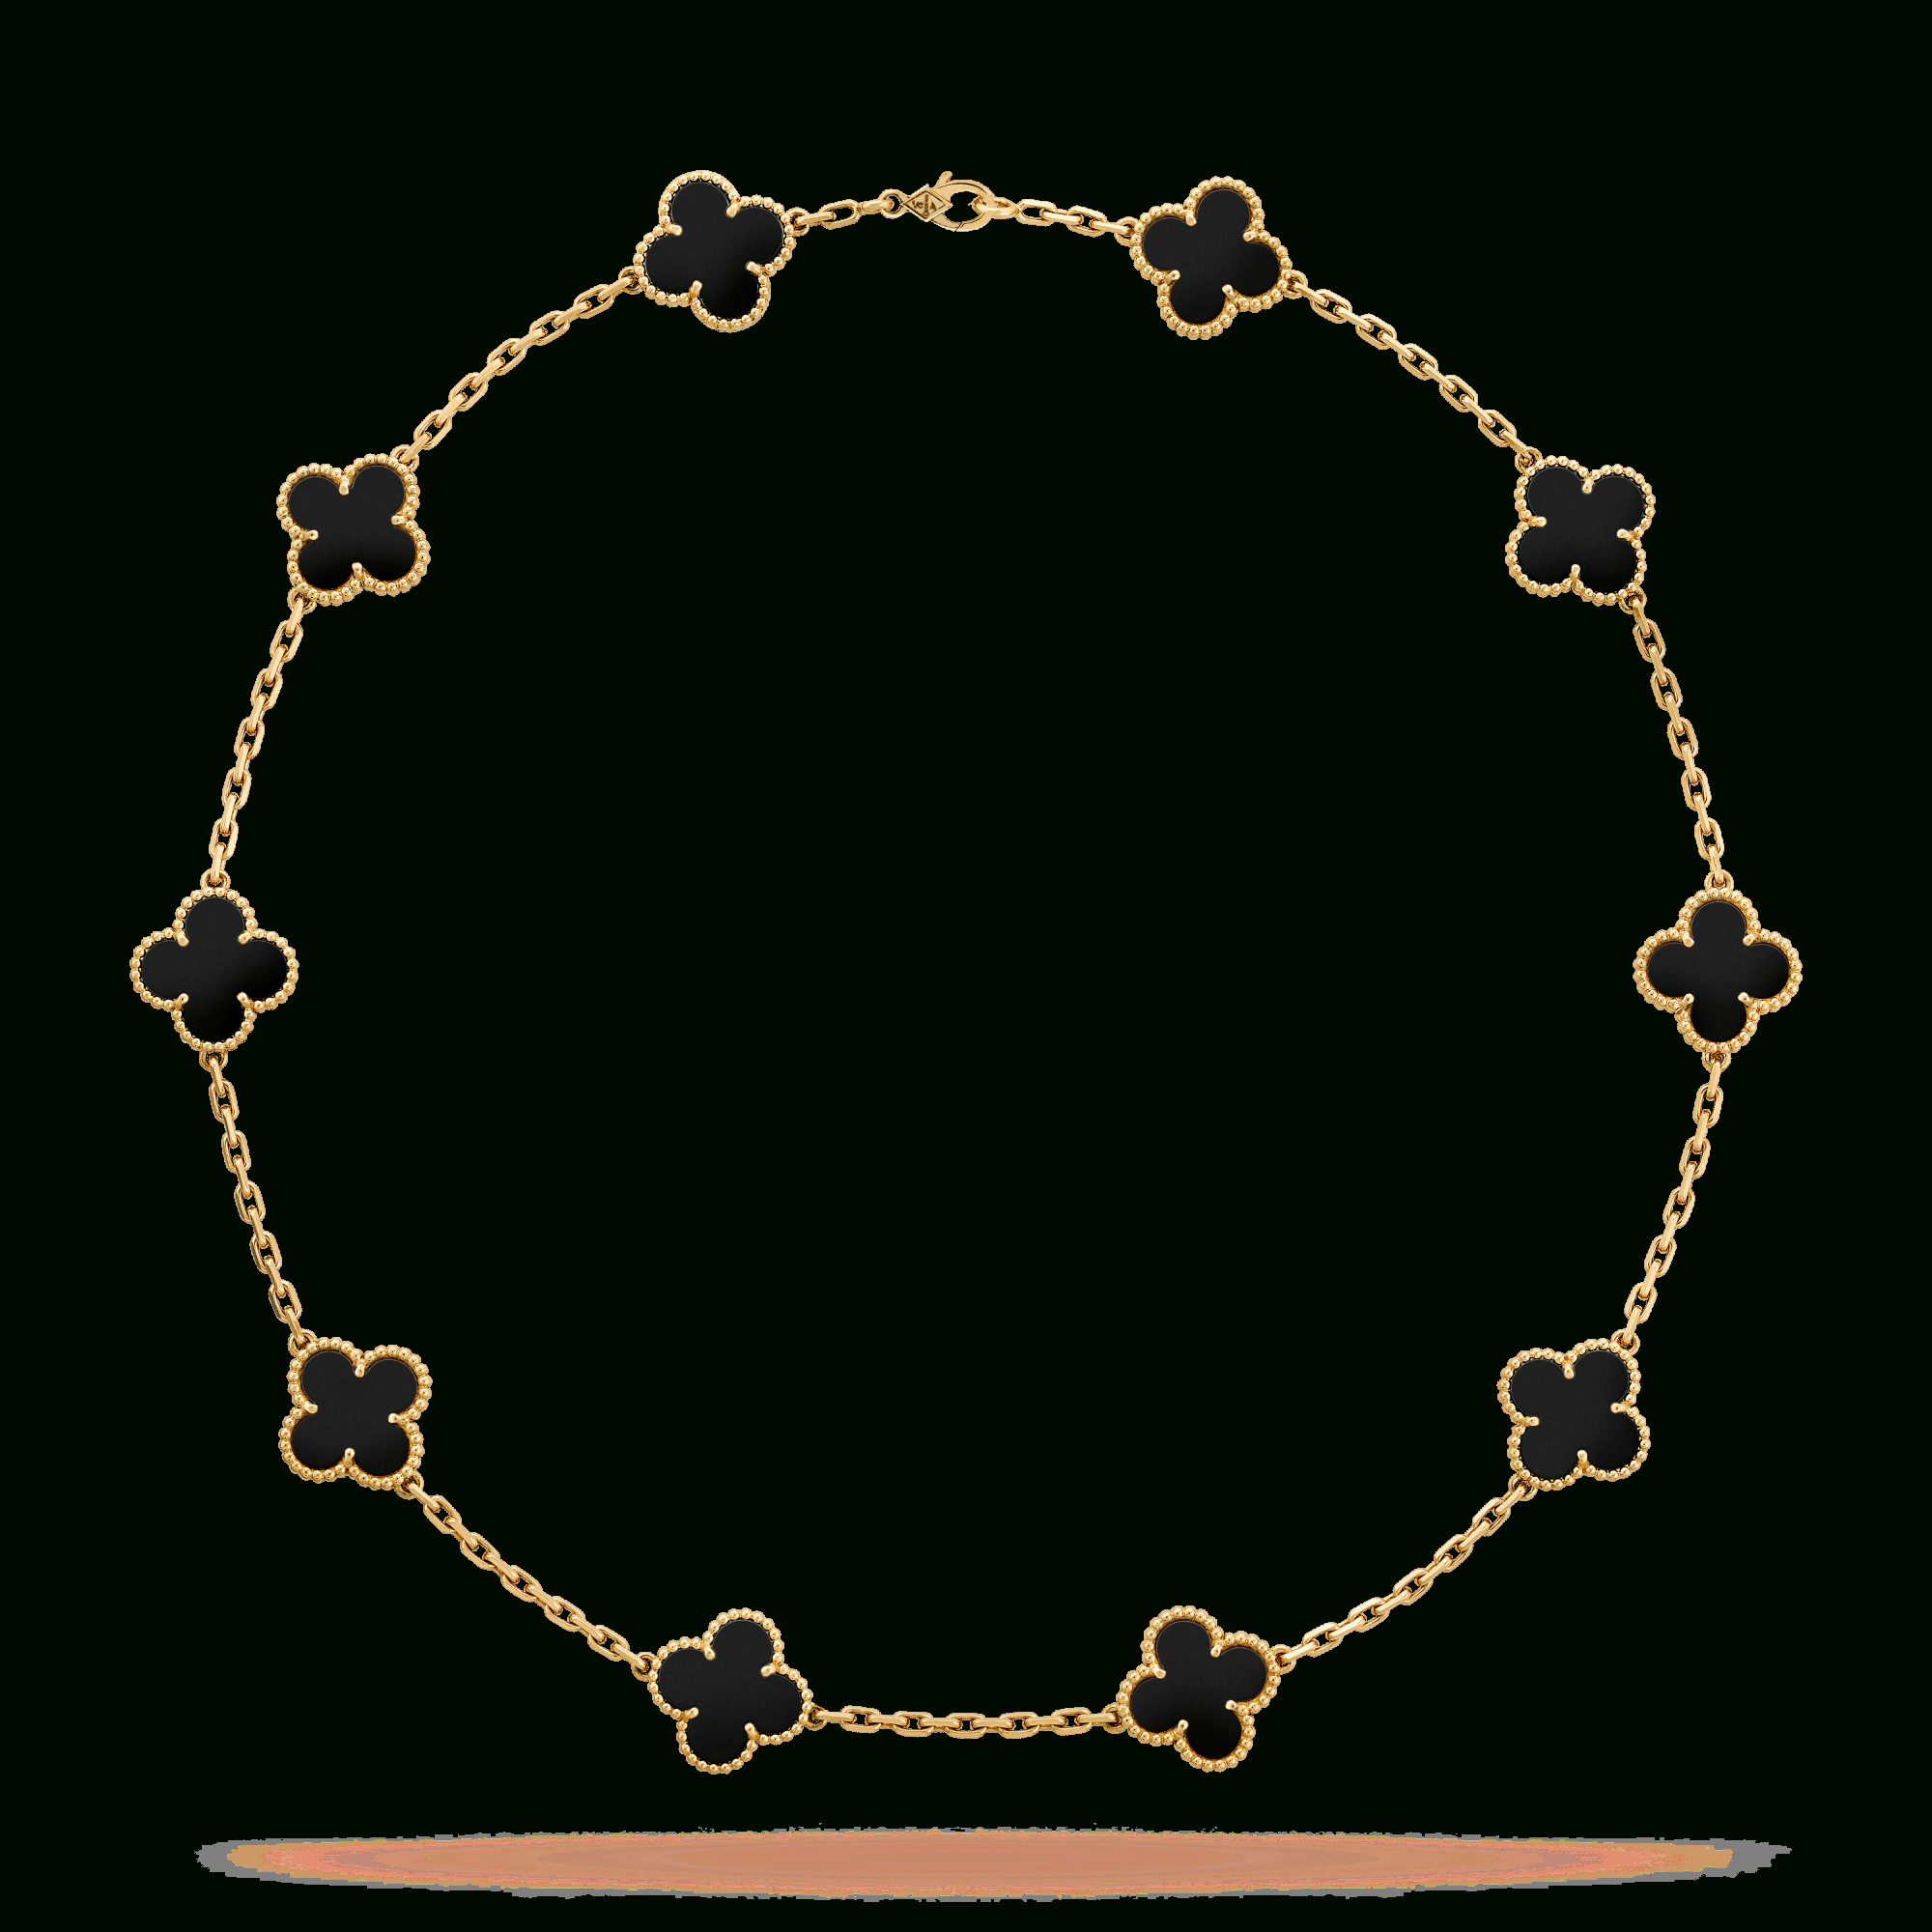 Vintage Alhambra Necklace, 10 Motifs – Vcara42700  Van Cleef & Arpels Intended For Most Current Vintage Circle Collier Necklaces (Gallery 13 of 25)